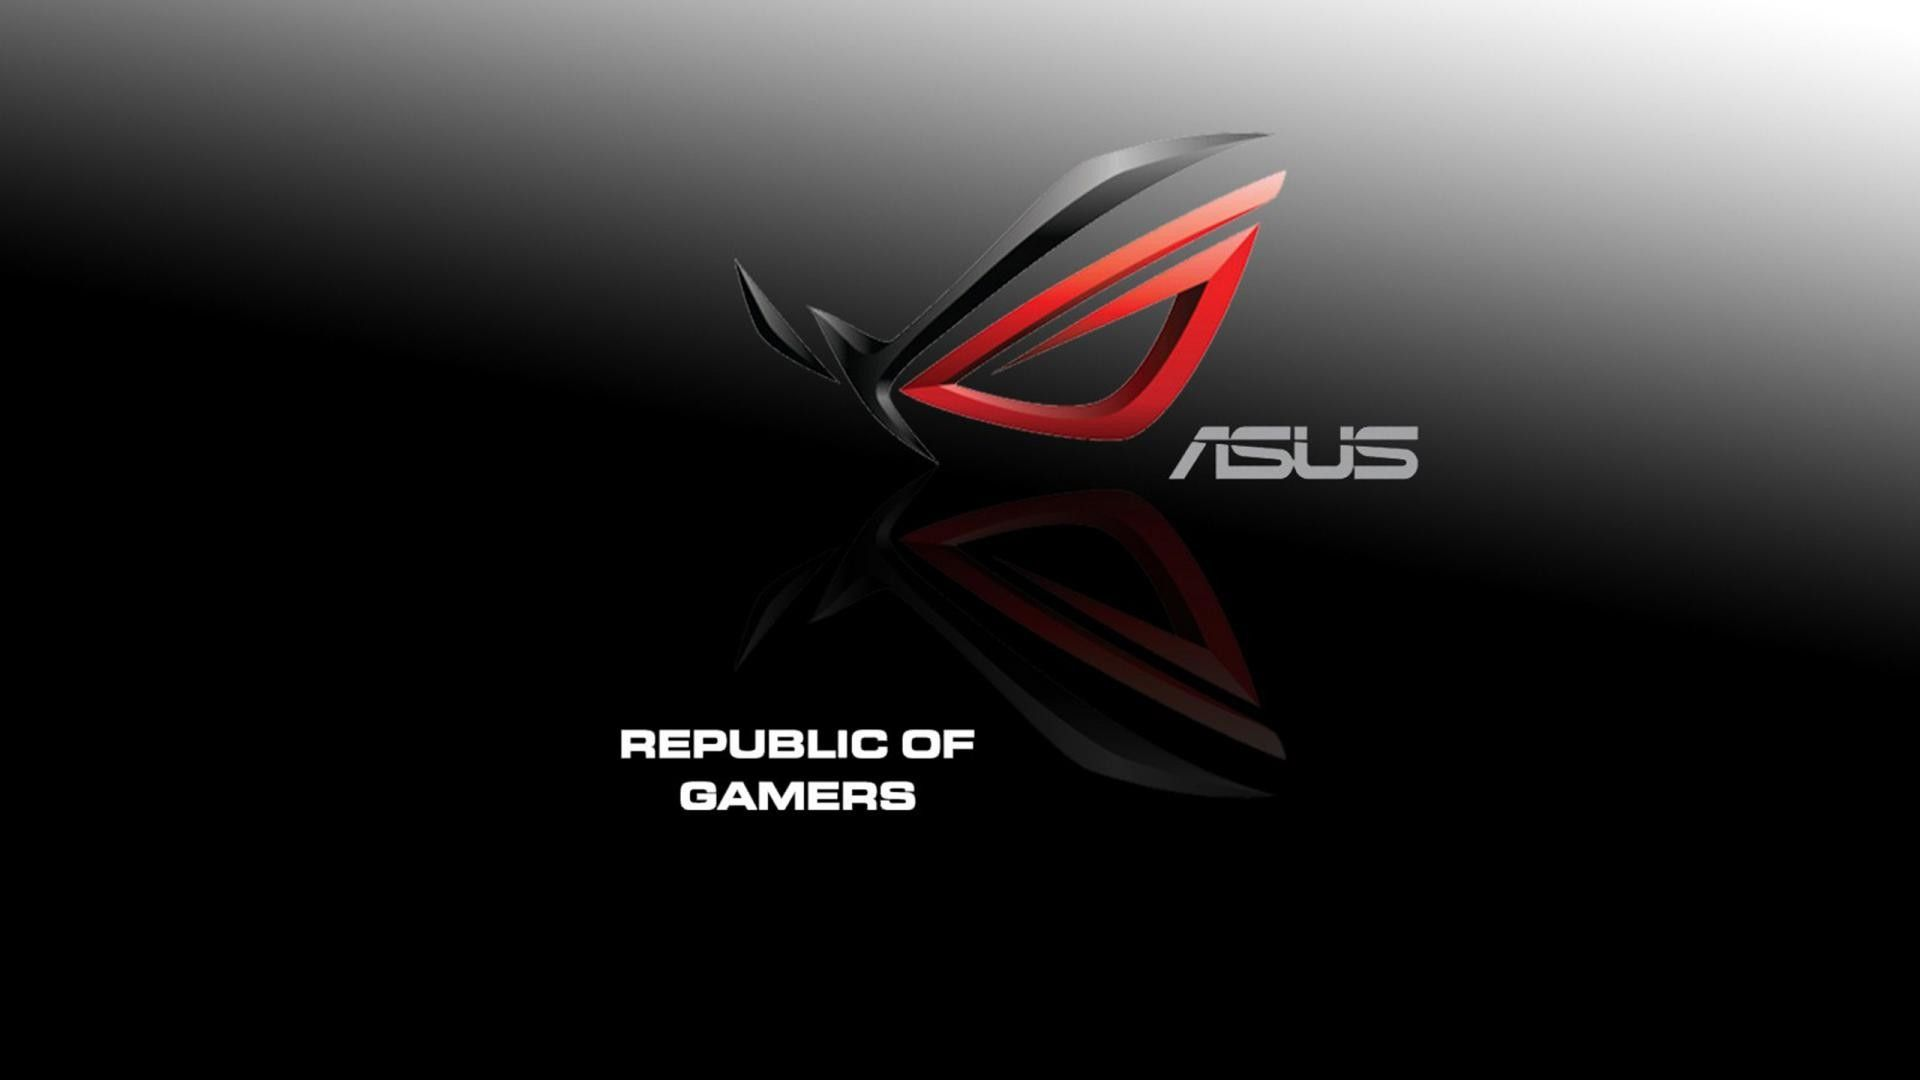 Asus Rog Wallpaper 1920x1080 wallpapers 2020 Check more